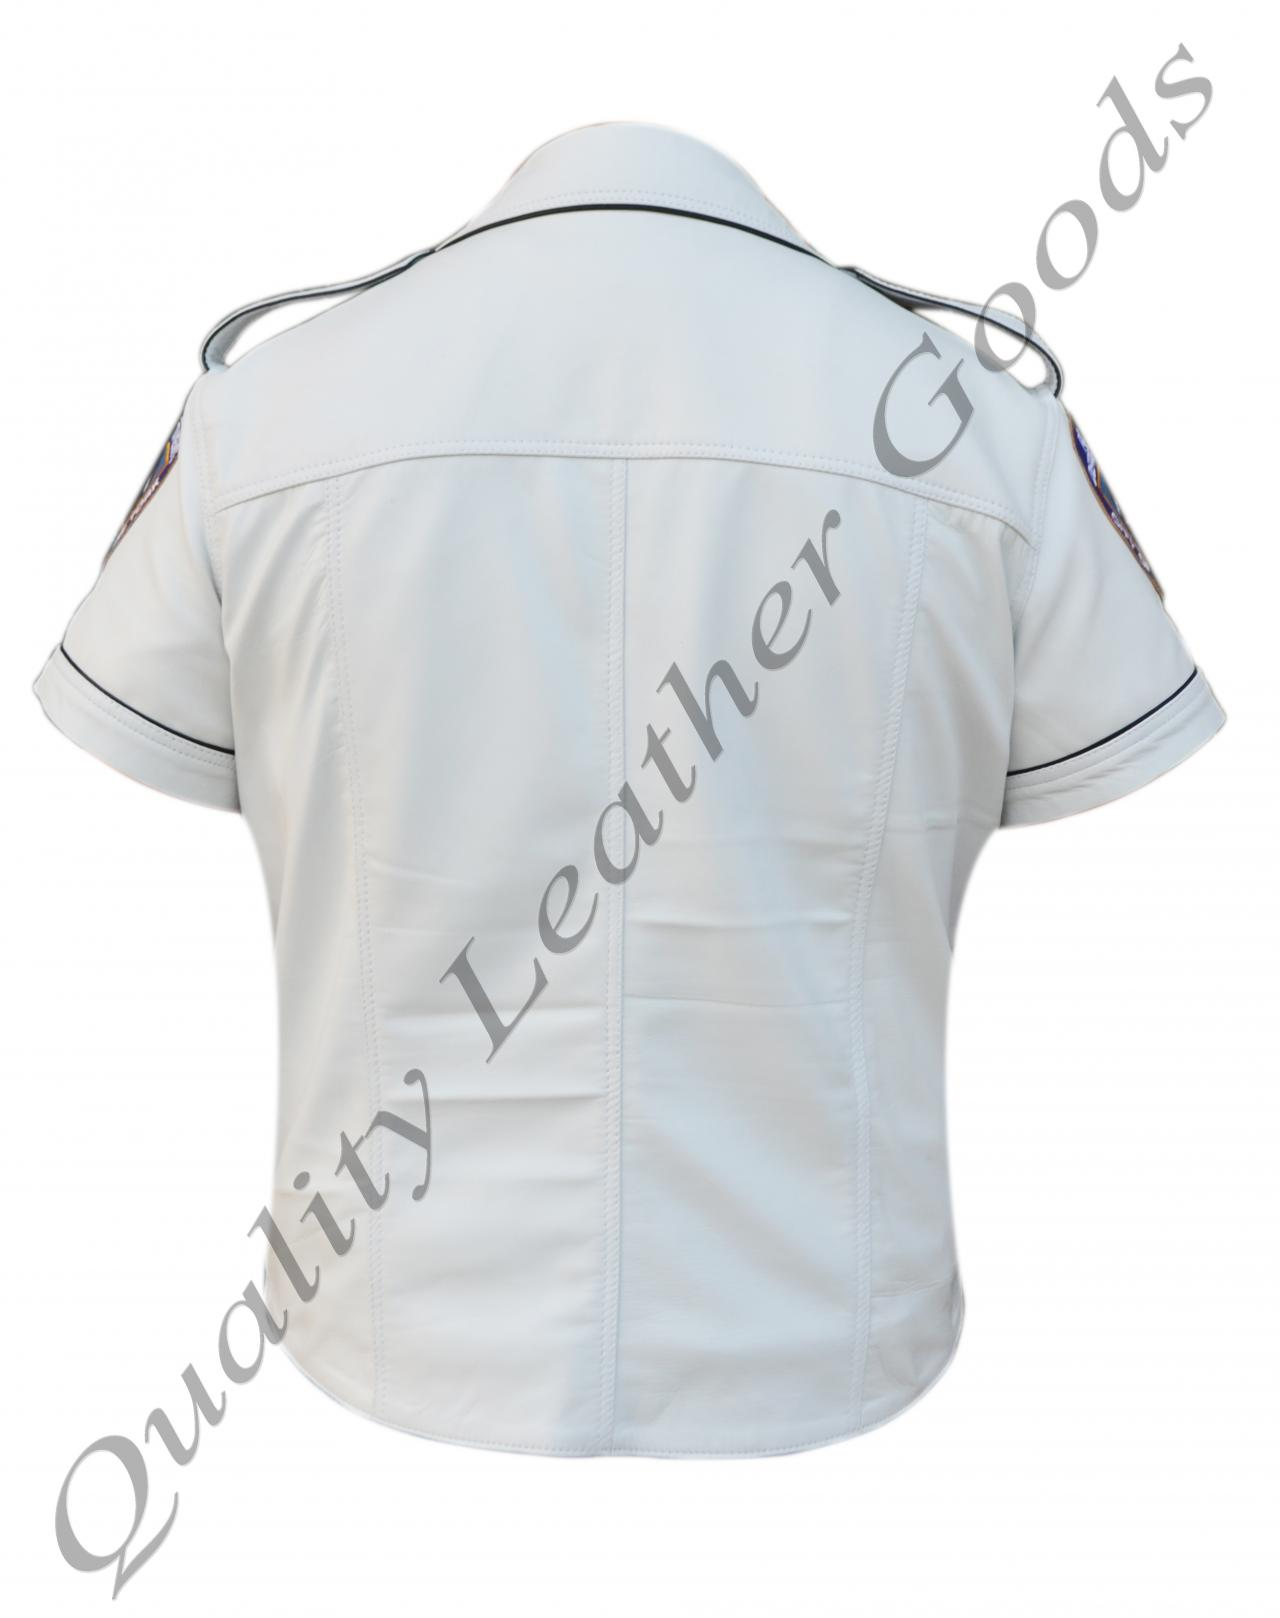 GENUINE SHEEP LEATHER WHITE WITH BLACK PIPING MILITARY UNIFORM SHIRT PARTY BLUF